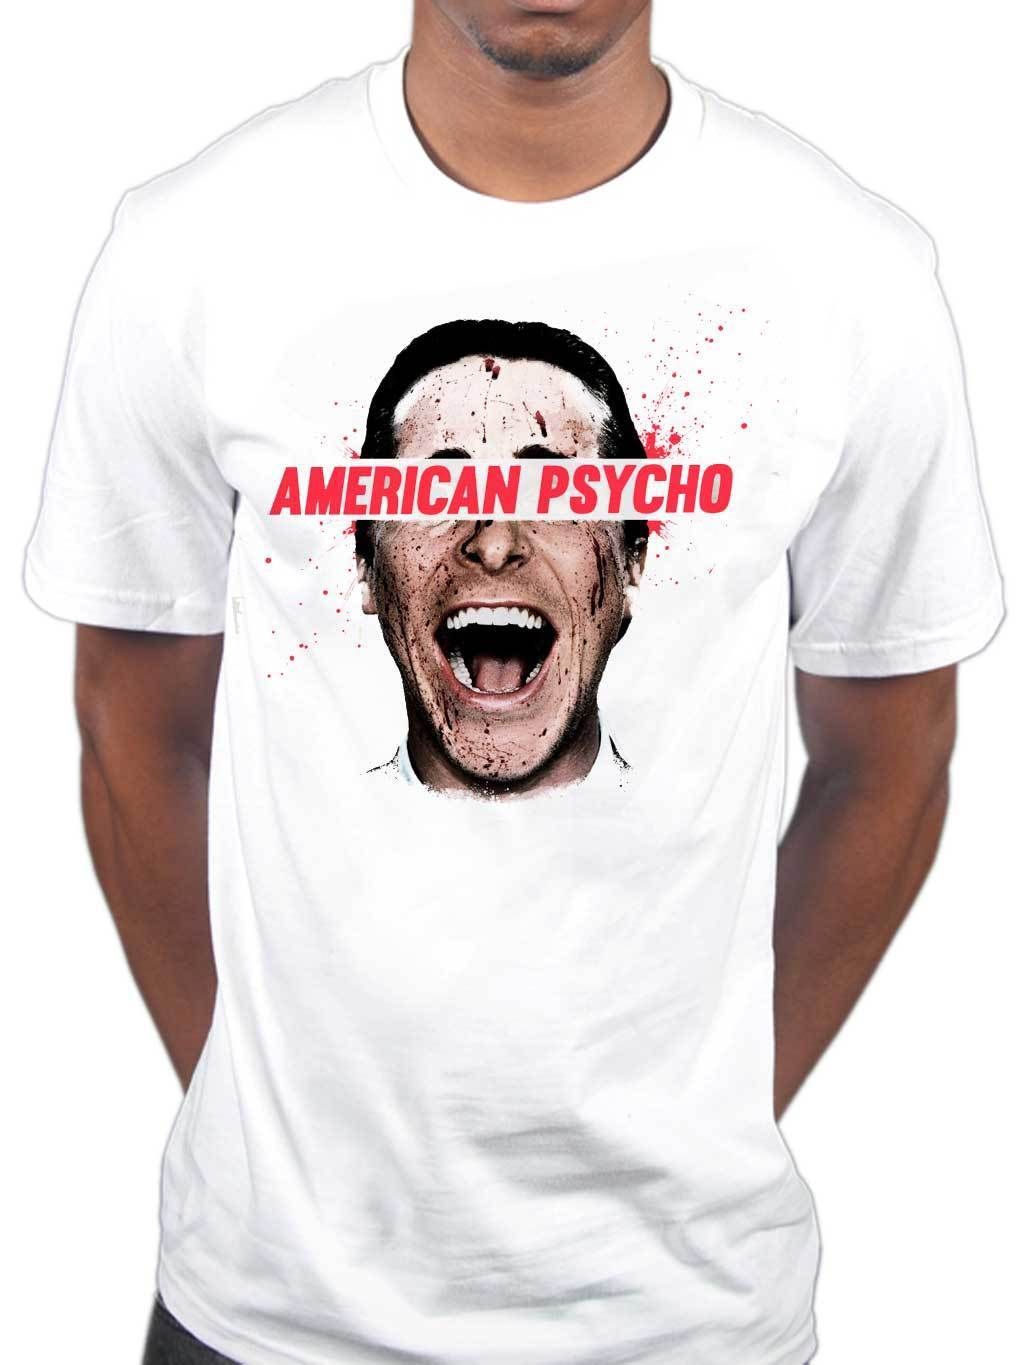 Official American Psycho T-Shirt Movie Male Film Merchandise Bloody New 2017 Cotton Short-Sleeve T Shirt New 2017 Fashion